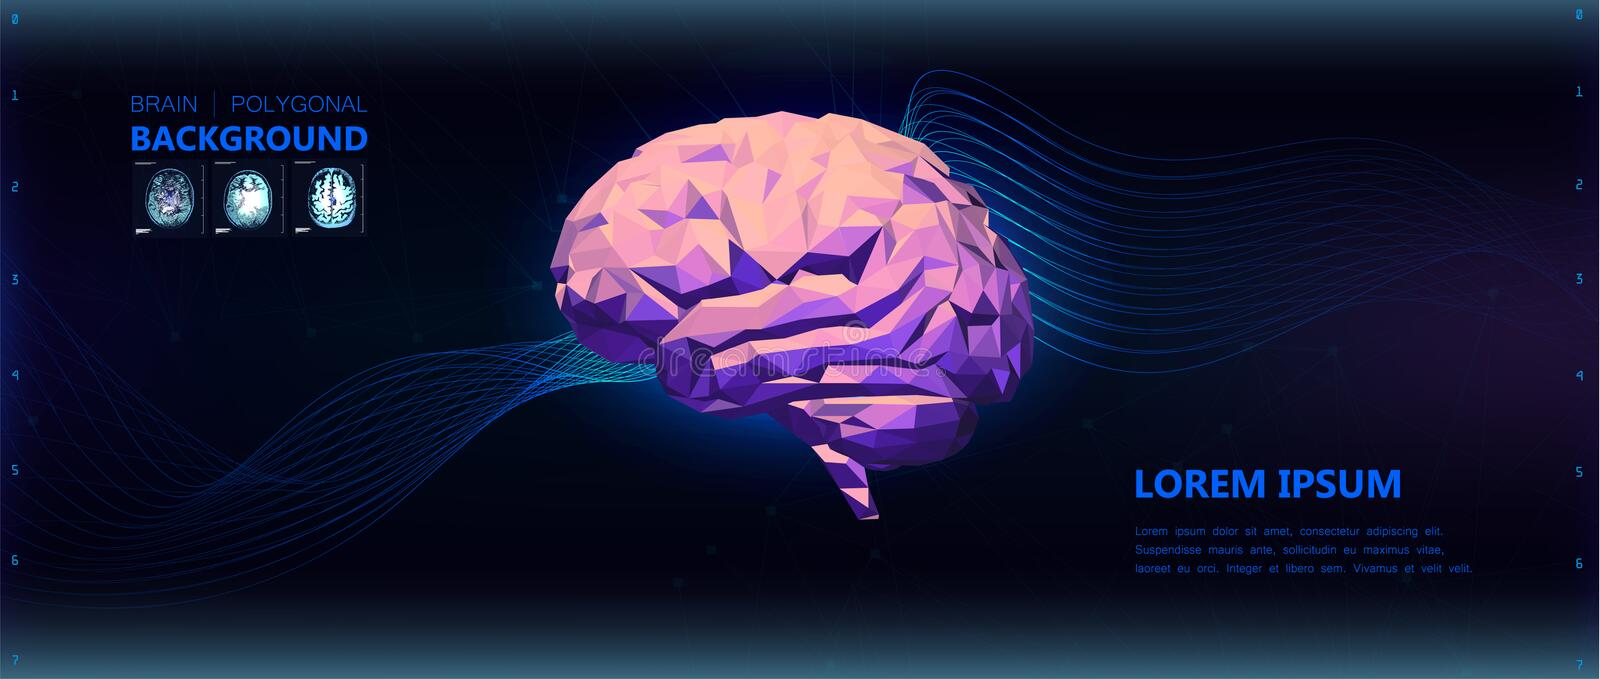 Colorful low poly side view brain illustration. Background. Colorful low poly side view brain illustration with futuristic background with lines and images of stock illustration